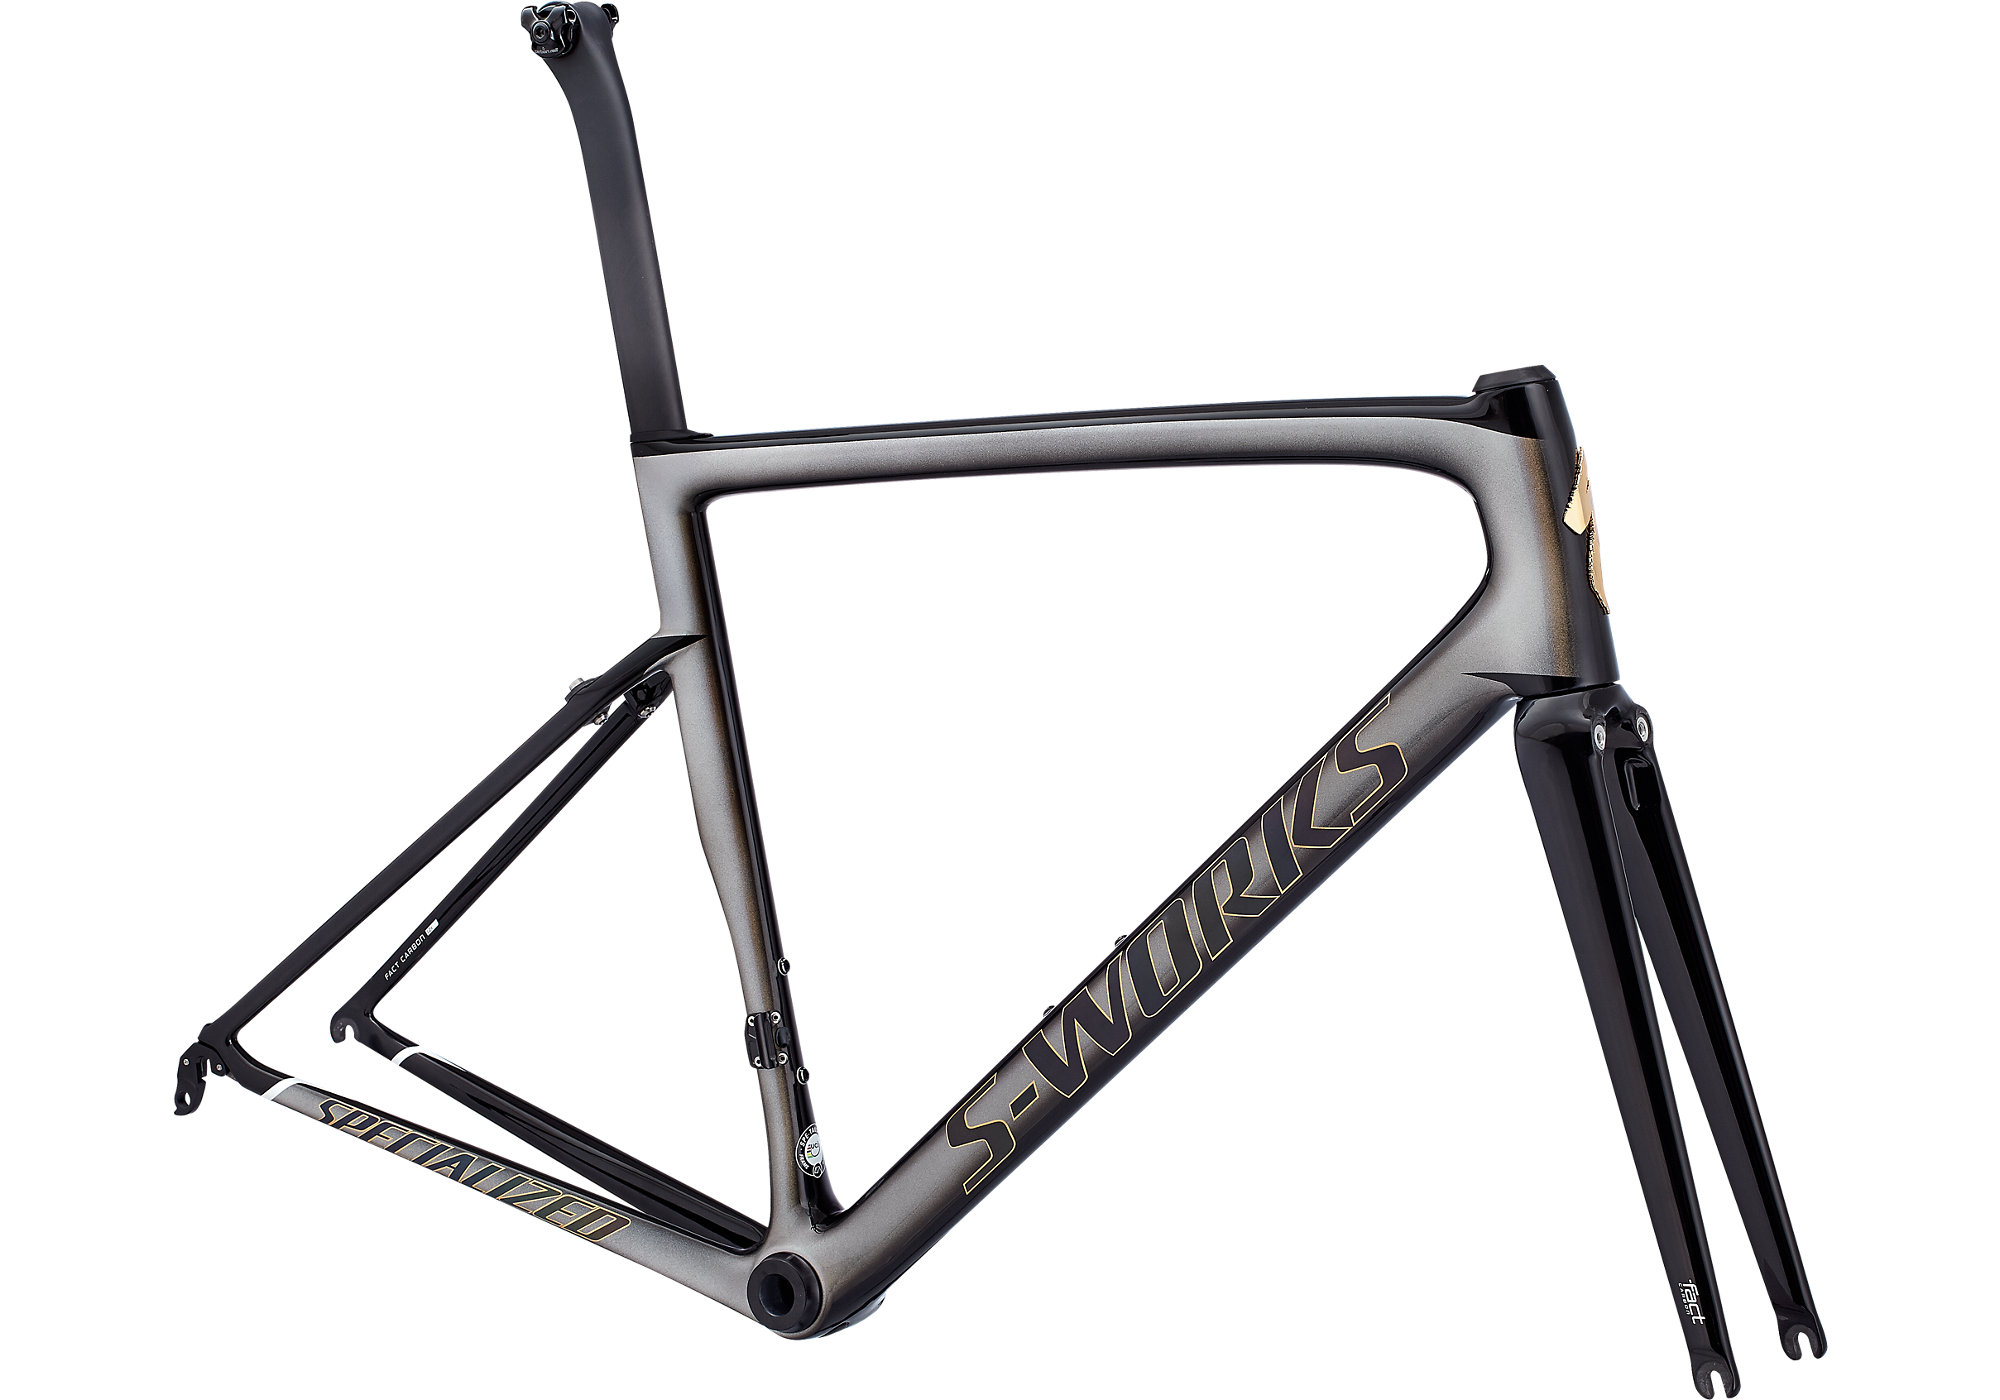 S-Works Custom Builds - Specialized Concept Store